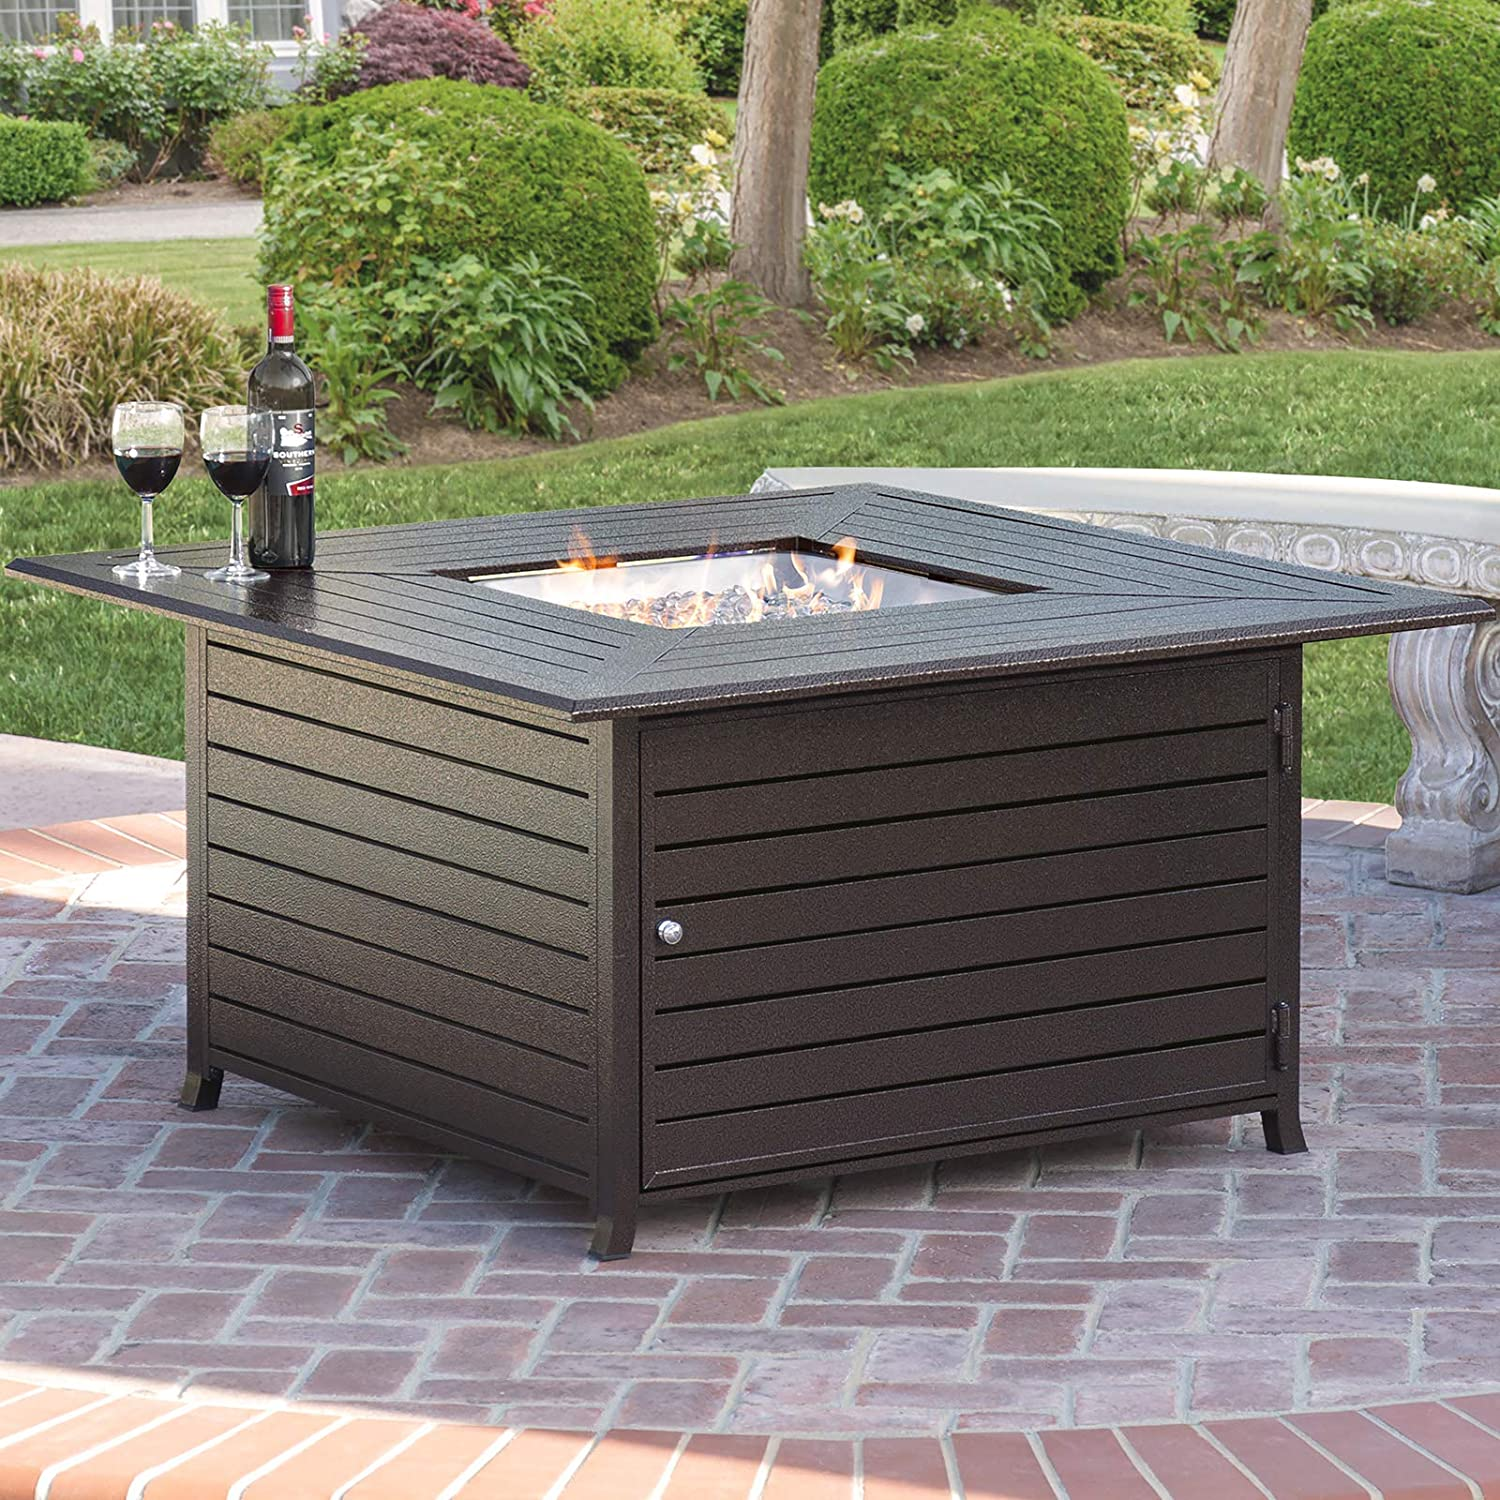 4. Best Choice Products BCP Extruded Aluminum Gas Outdoor Fire Pit Table with Cover